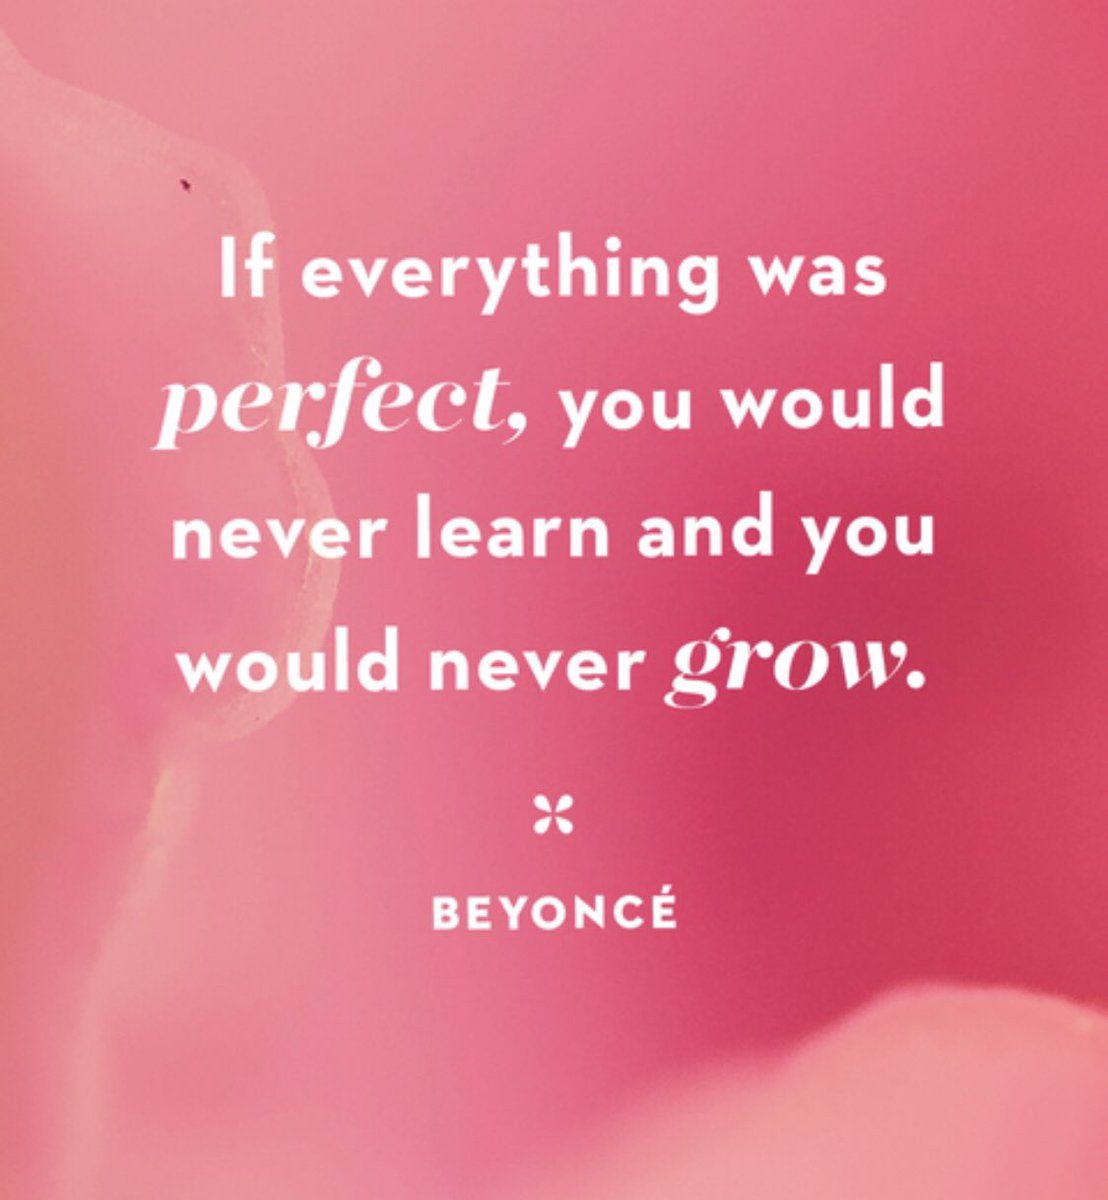 If everything was perfect, you would never learn and you would never grow.   #BeKindAlways    #thursdaymotivation.  #challenge    #amwriting    #behappy2day   #behumble    #BeSafeOutThere   #gratitude    #Grateful    #thursdaymorning